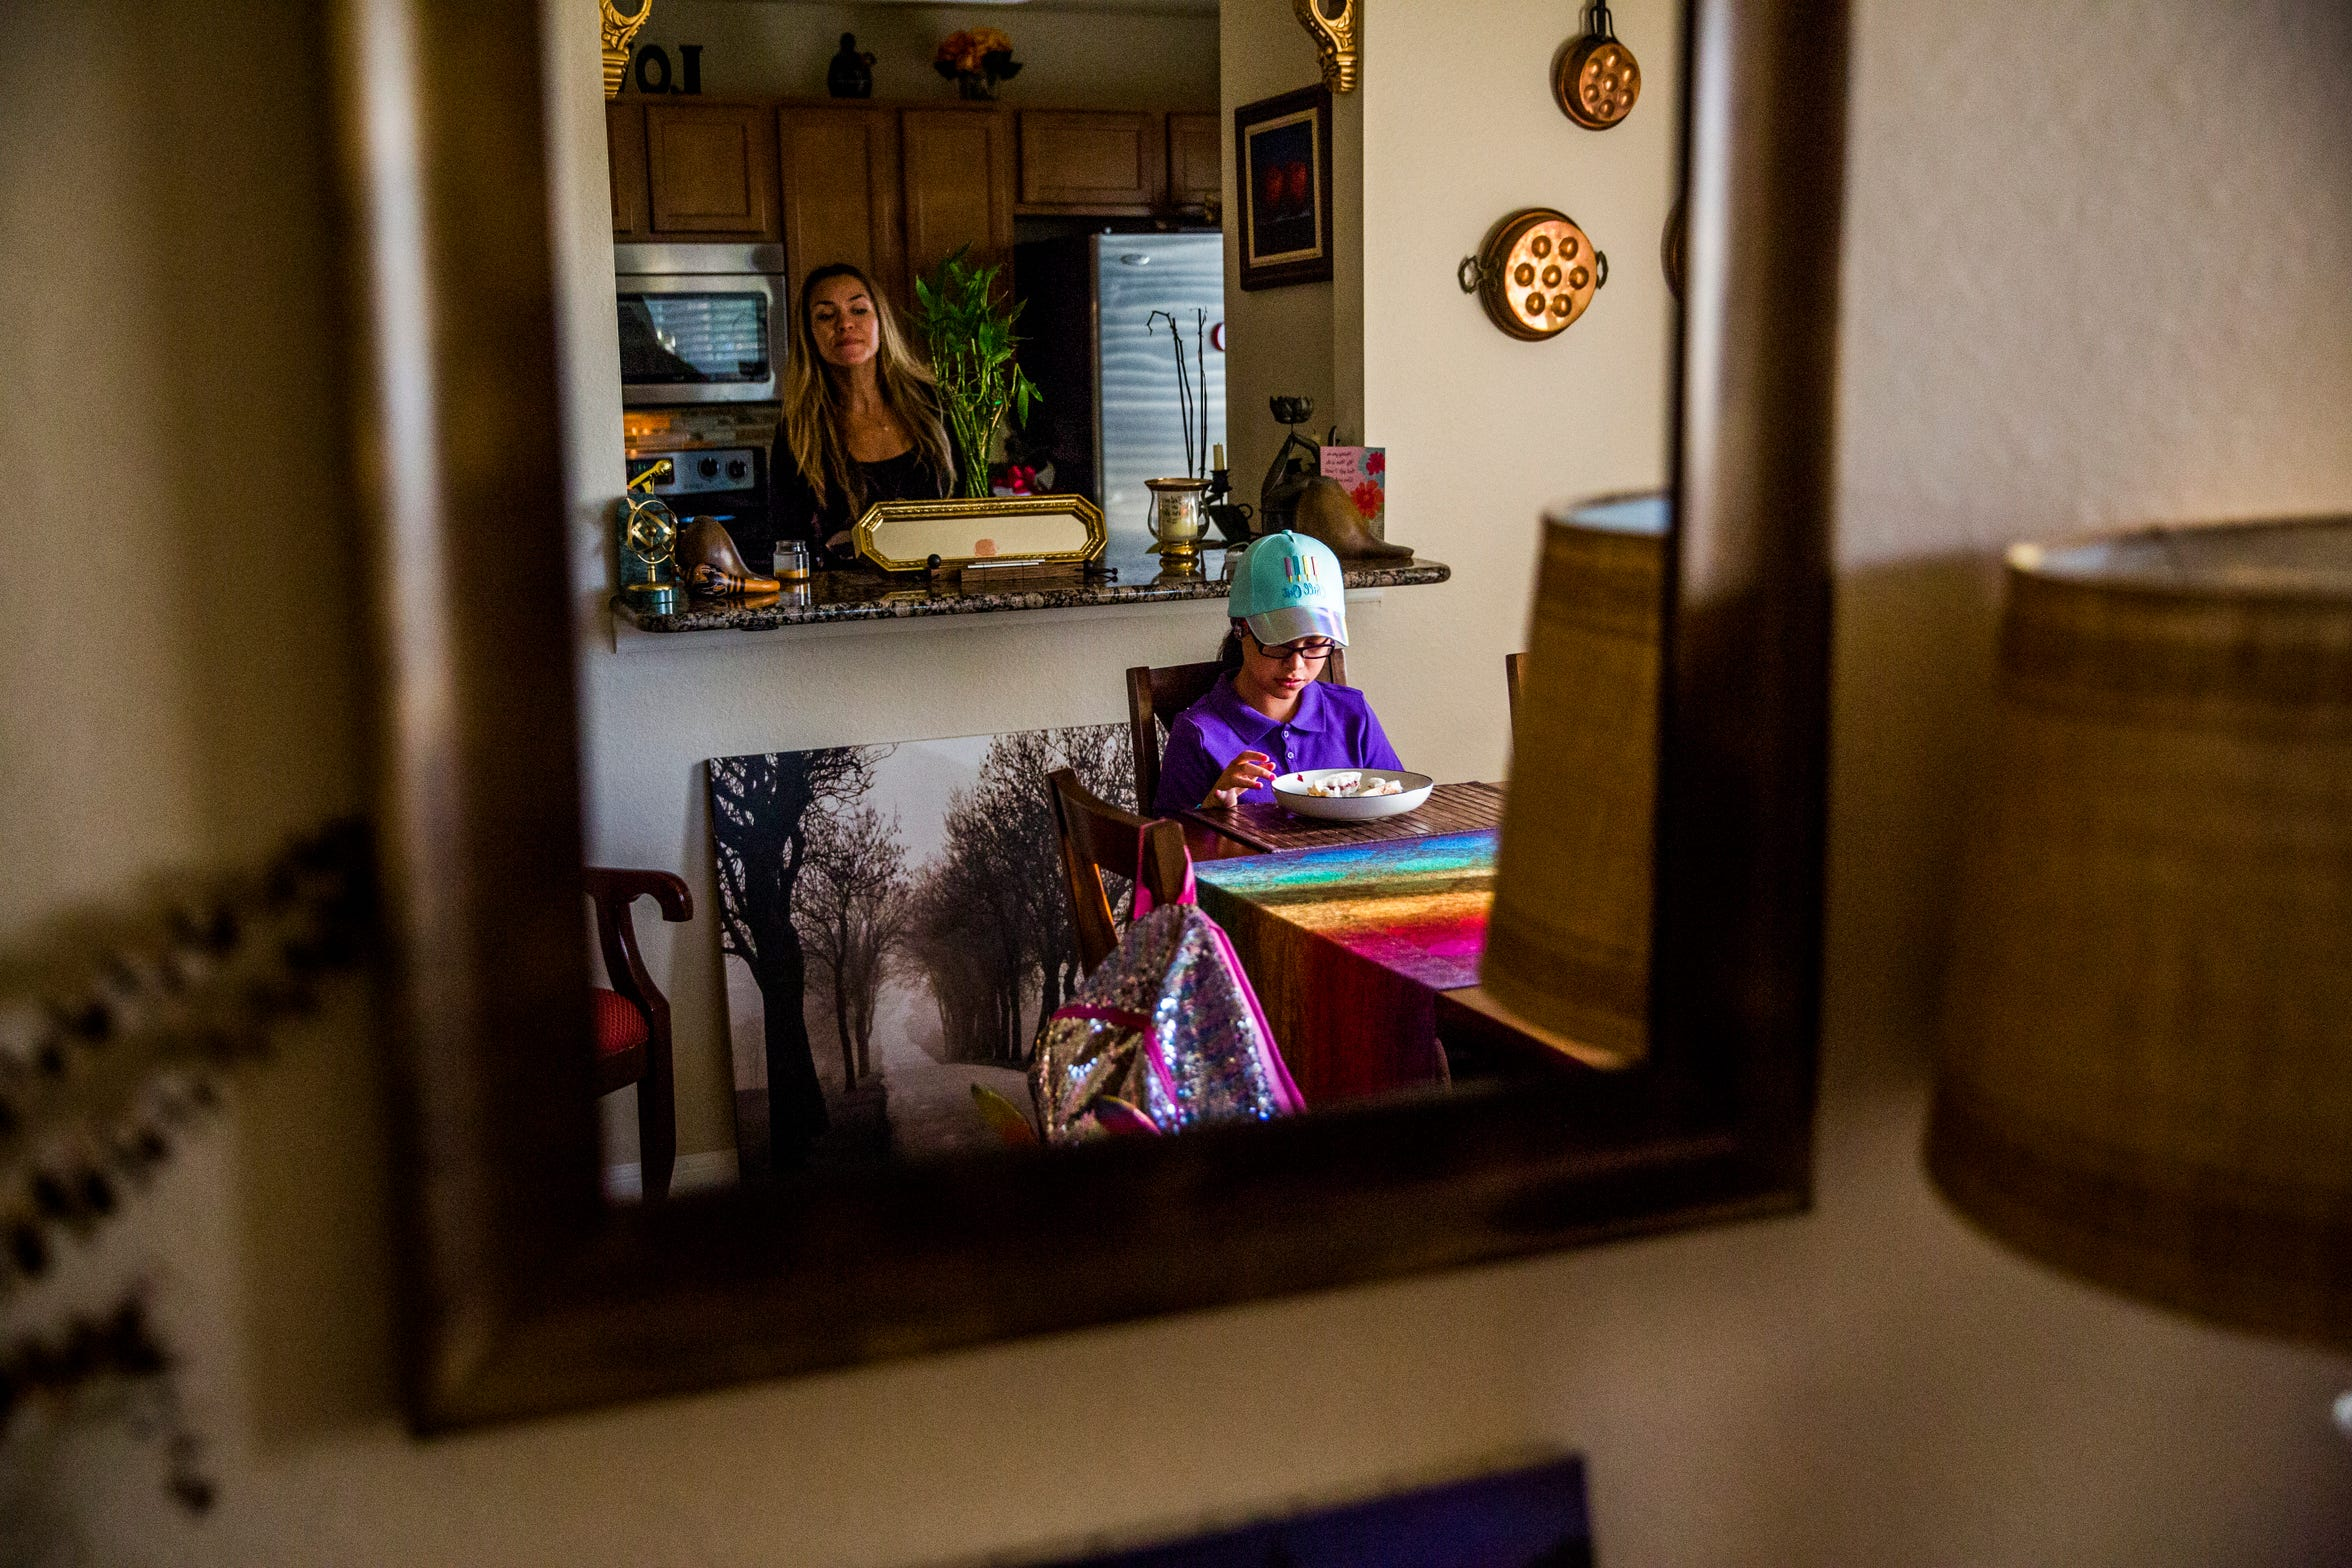 Marcela Guimoye checks on her daughter Camila Chang, 11, as she eats breakfast before school in their North Naples home on Thursday, Aug. 16, 2018. After Camila was diagnosed with autism, Guimoye got her master's degree in behavioral analysis in order to better understand her daughter's diagnosis and how to be there for her. Guimoye says that her degree also gave her the foundational knowledge to start EndlessBrain.